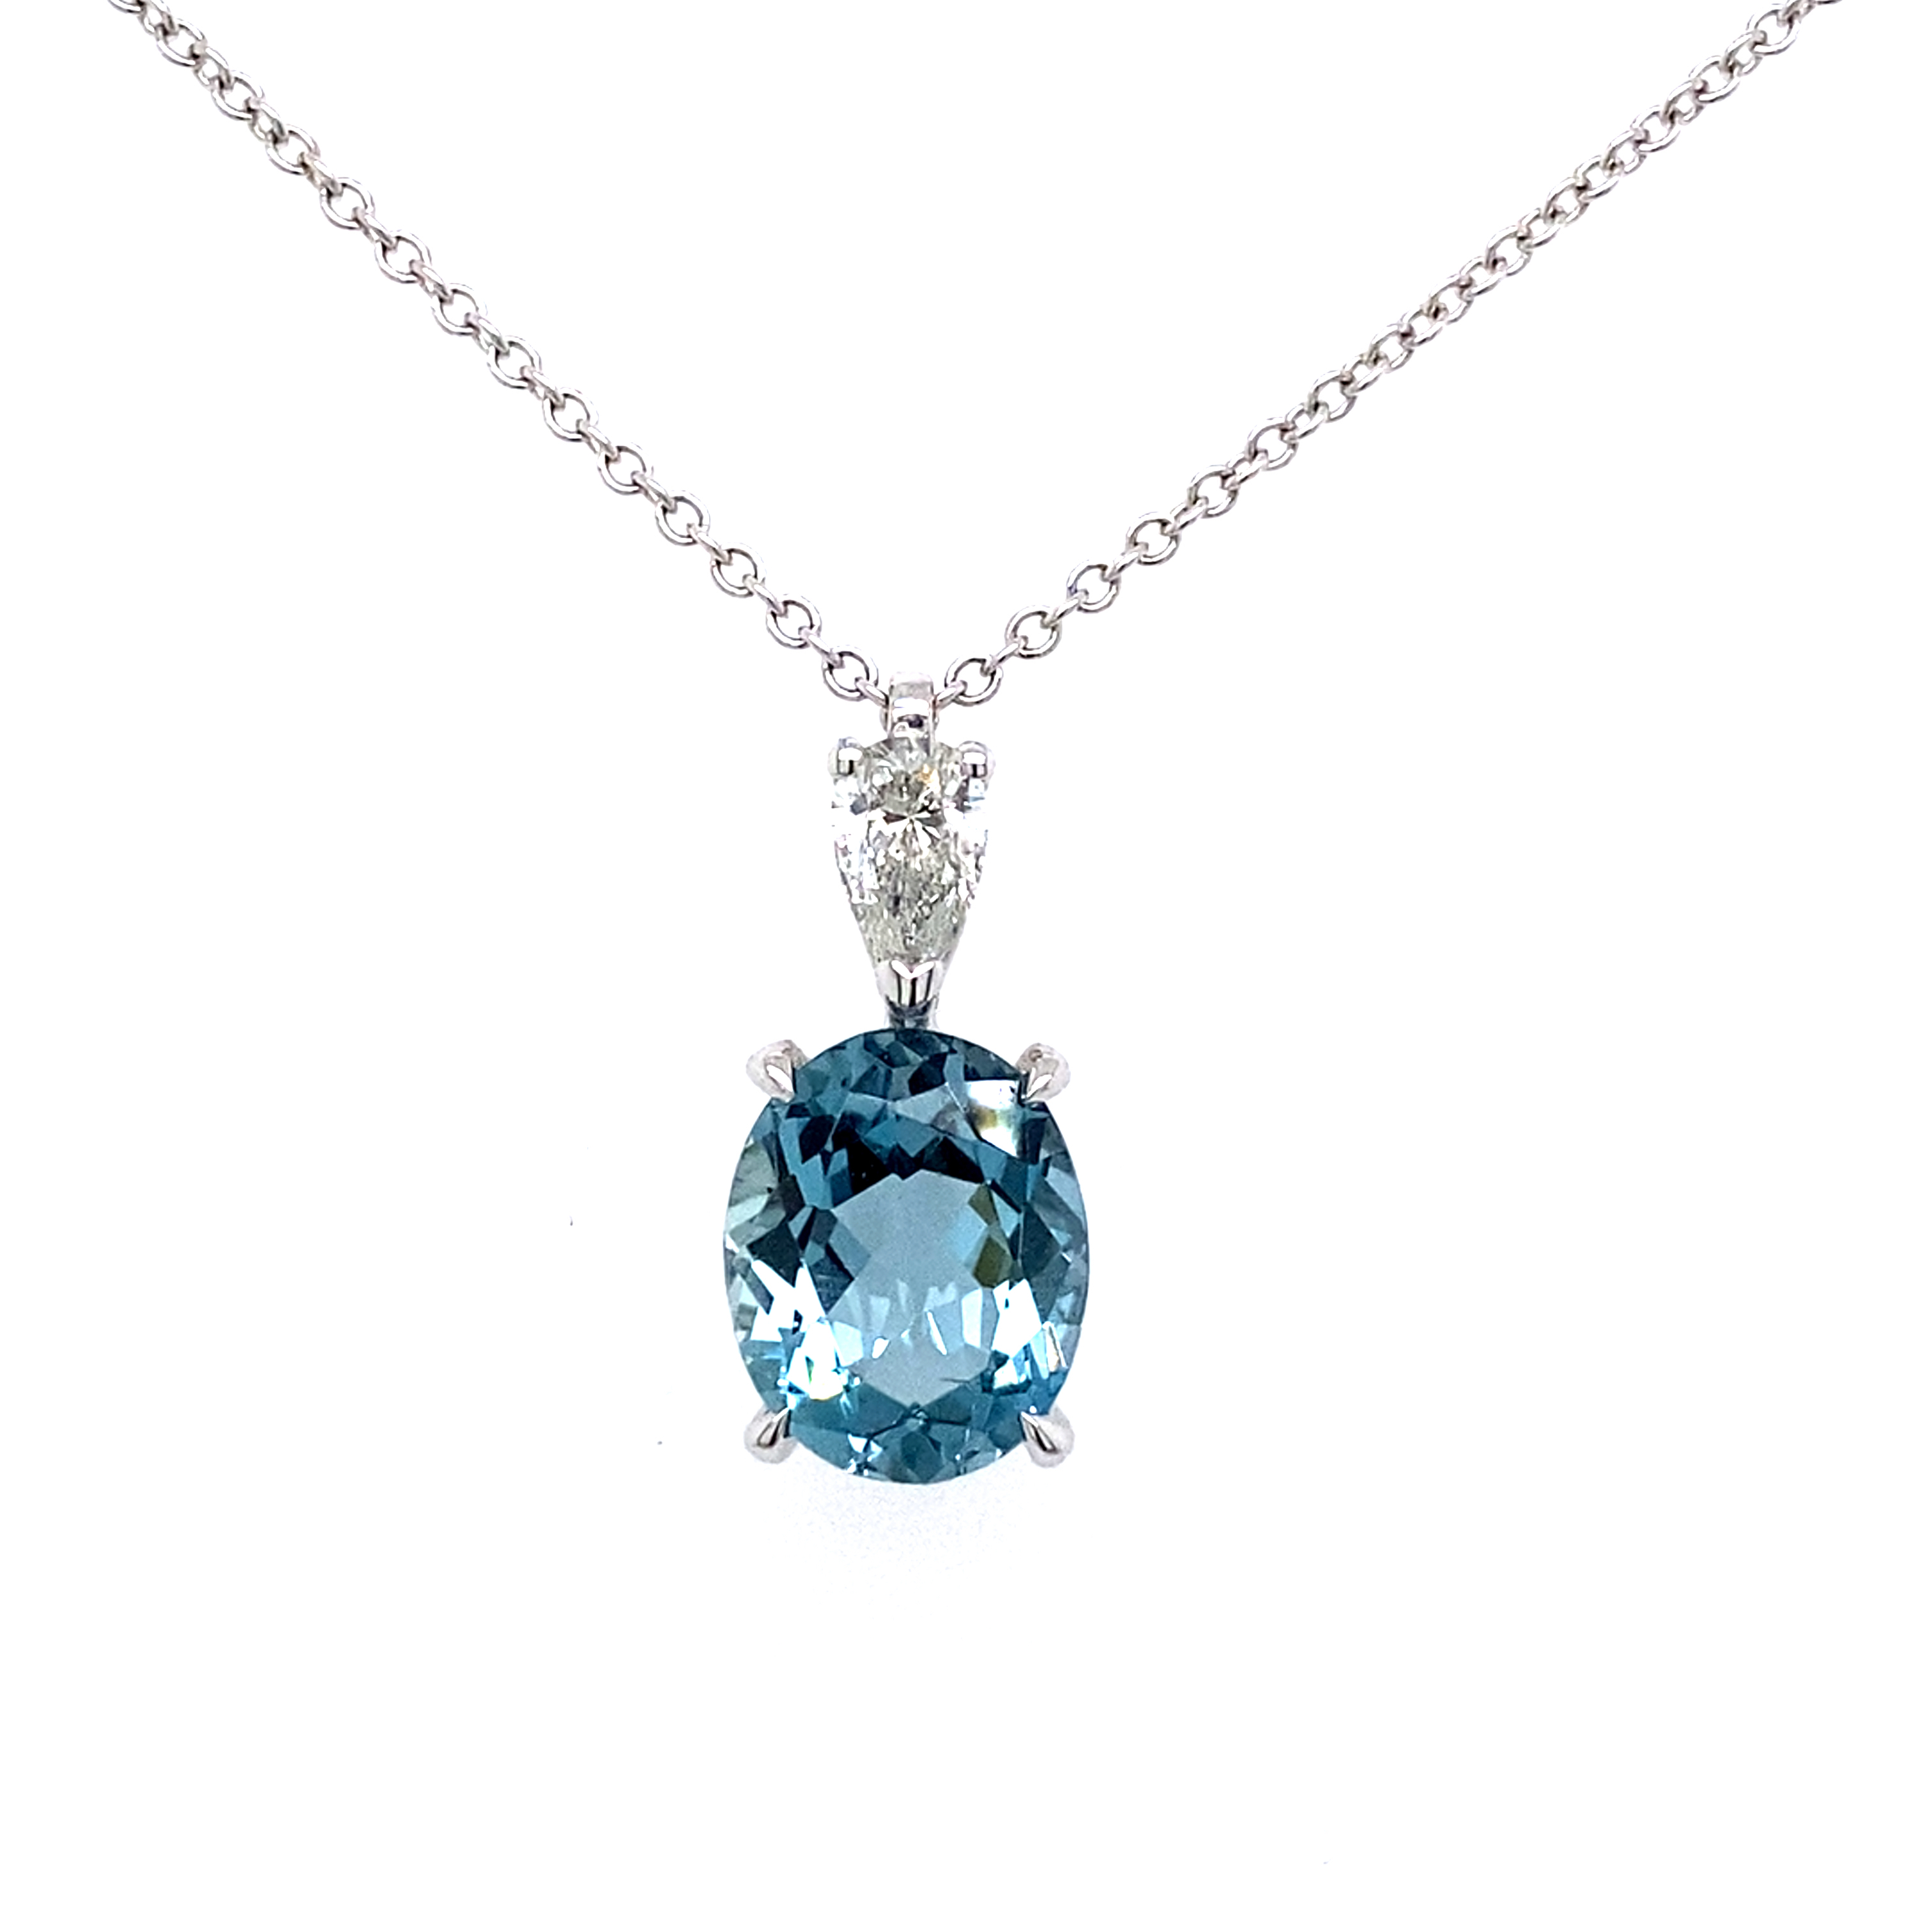 18 Carat White Gold, Aquamarine and Diamond Pendant